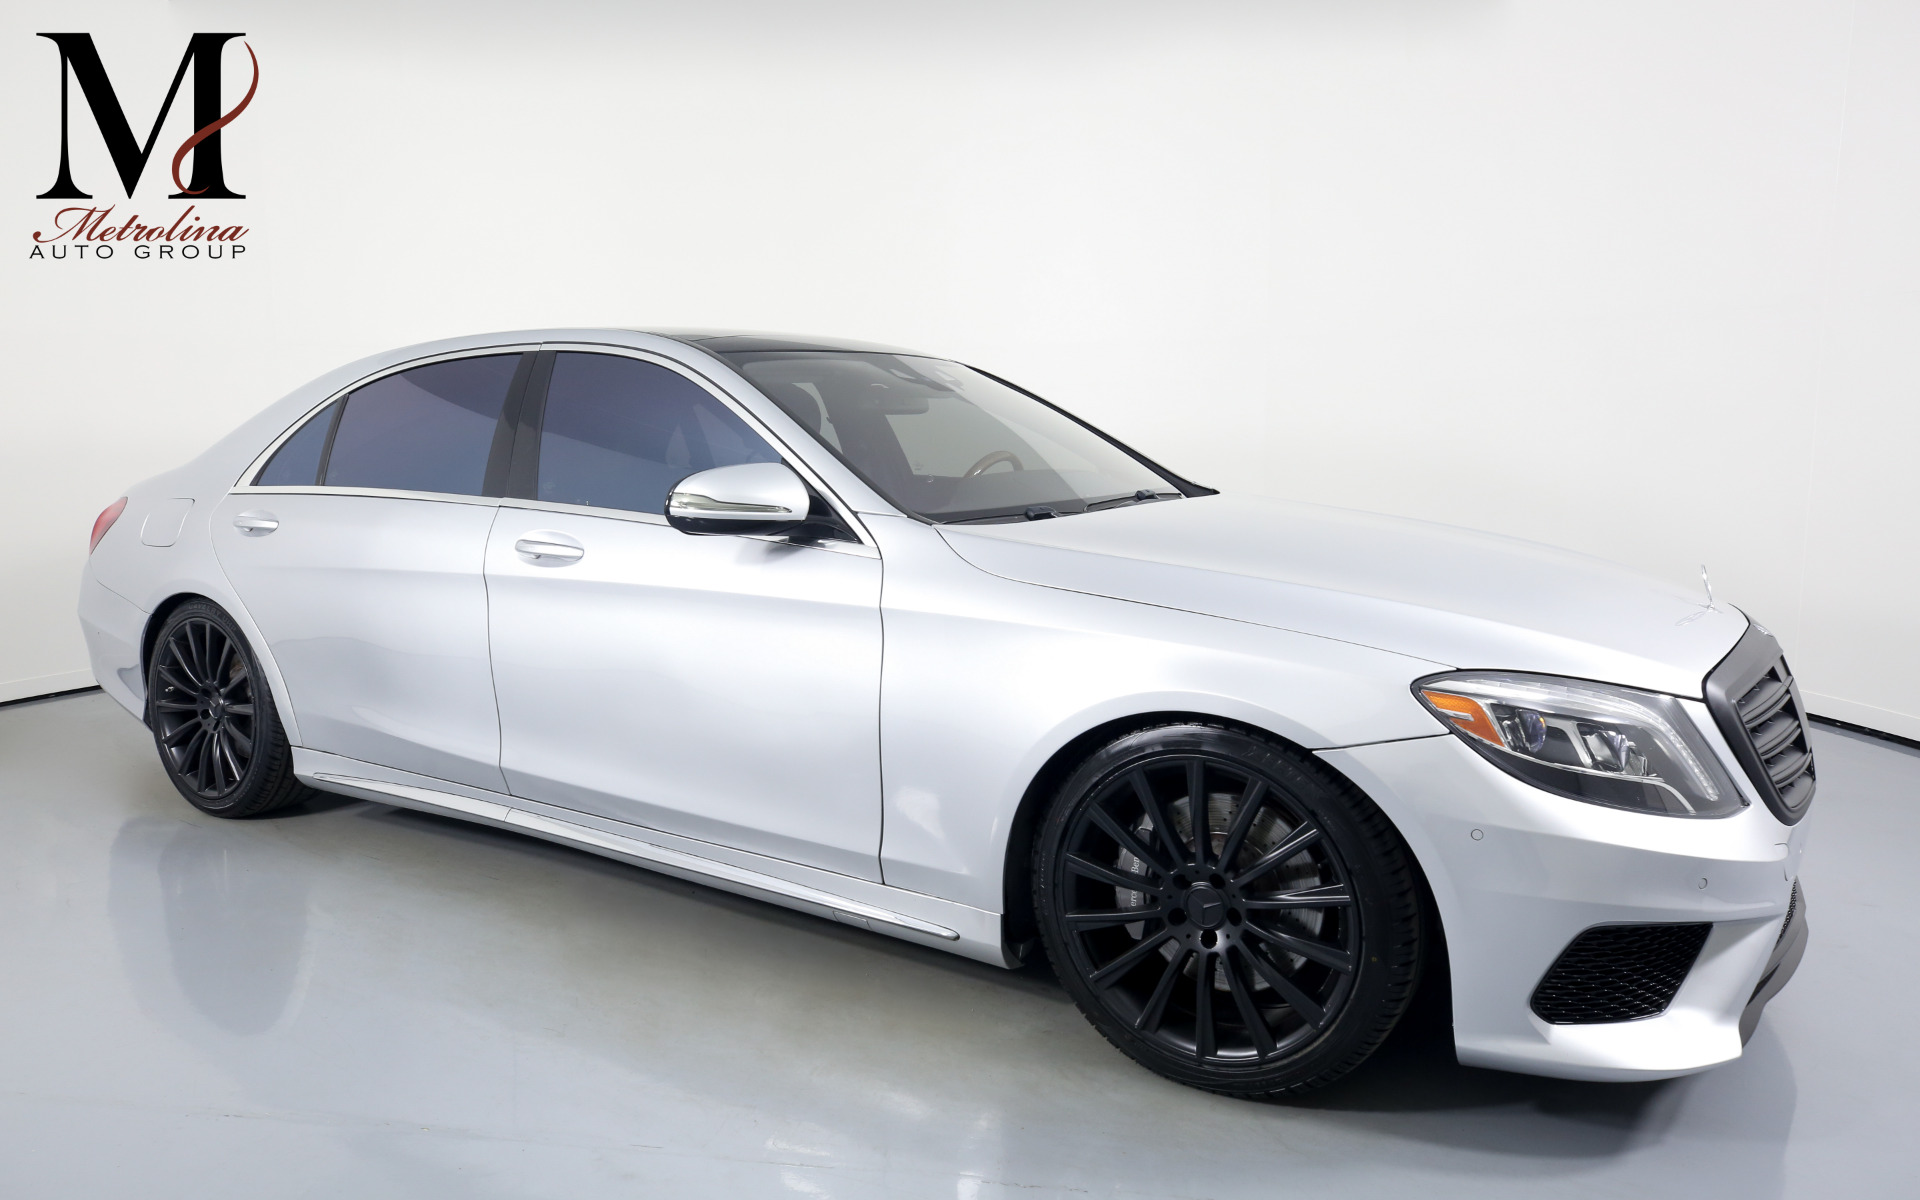 Used 2014 Mercedes-Benz S-Class S 550 for sale $49,996 at Metrolina Auto Group in Charlotte NC 28217 - 1